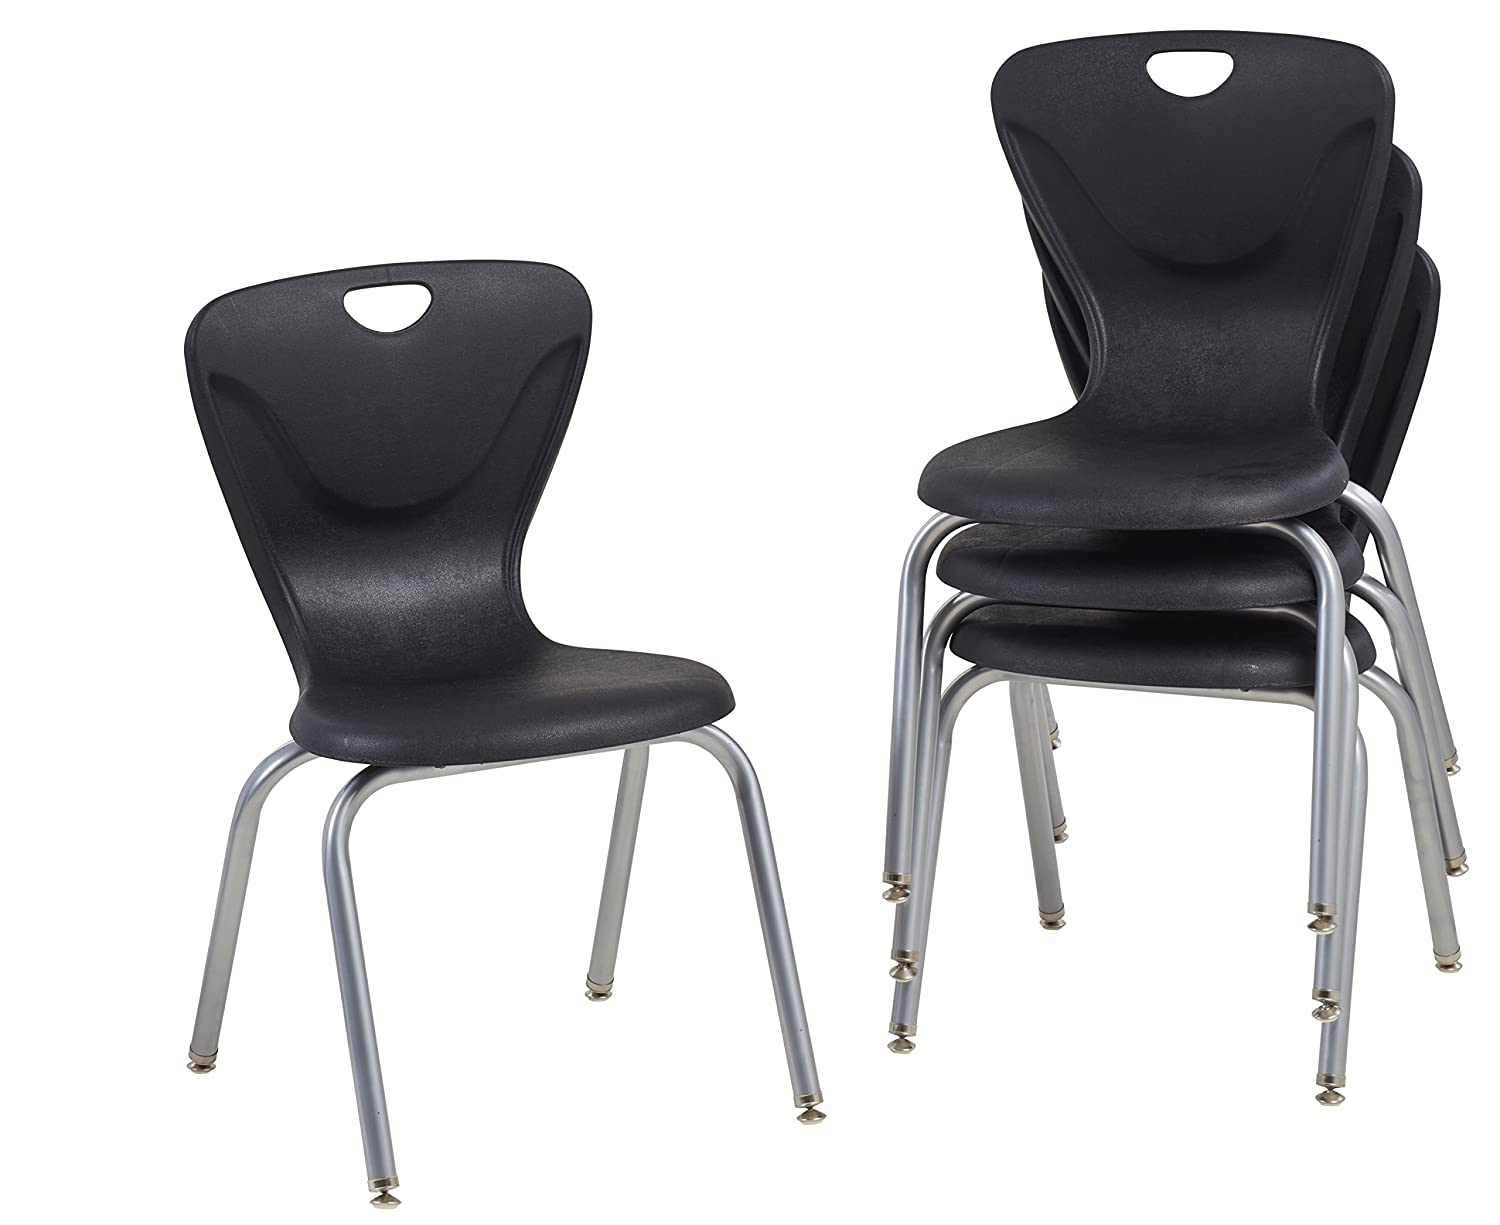 """FDP 18"""" Contour School Stacking Student Chair, Ergonomic Molded Seat Shell with Powder Coated Silver Frame and Swivel Leg Glides; for in-Home Learning, Classroom or Office - Black (4-Pack): Industrial & Scientific"""